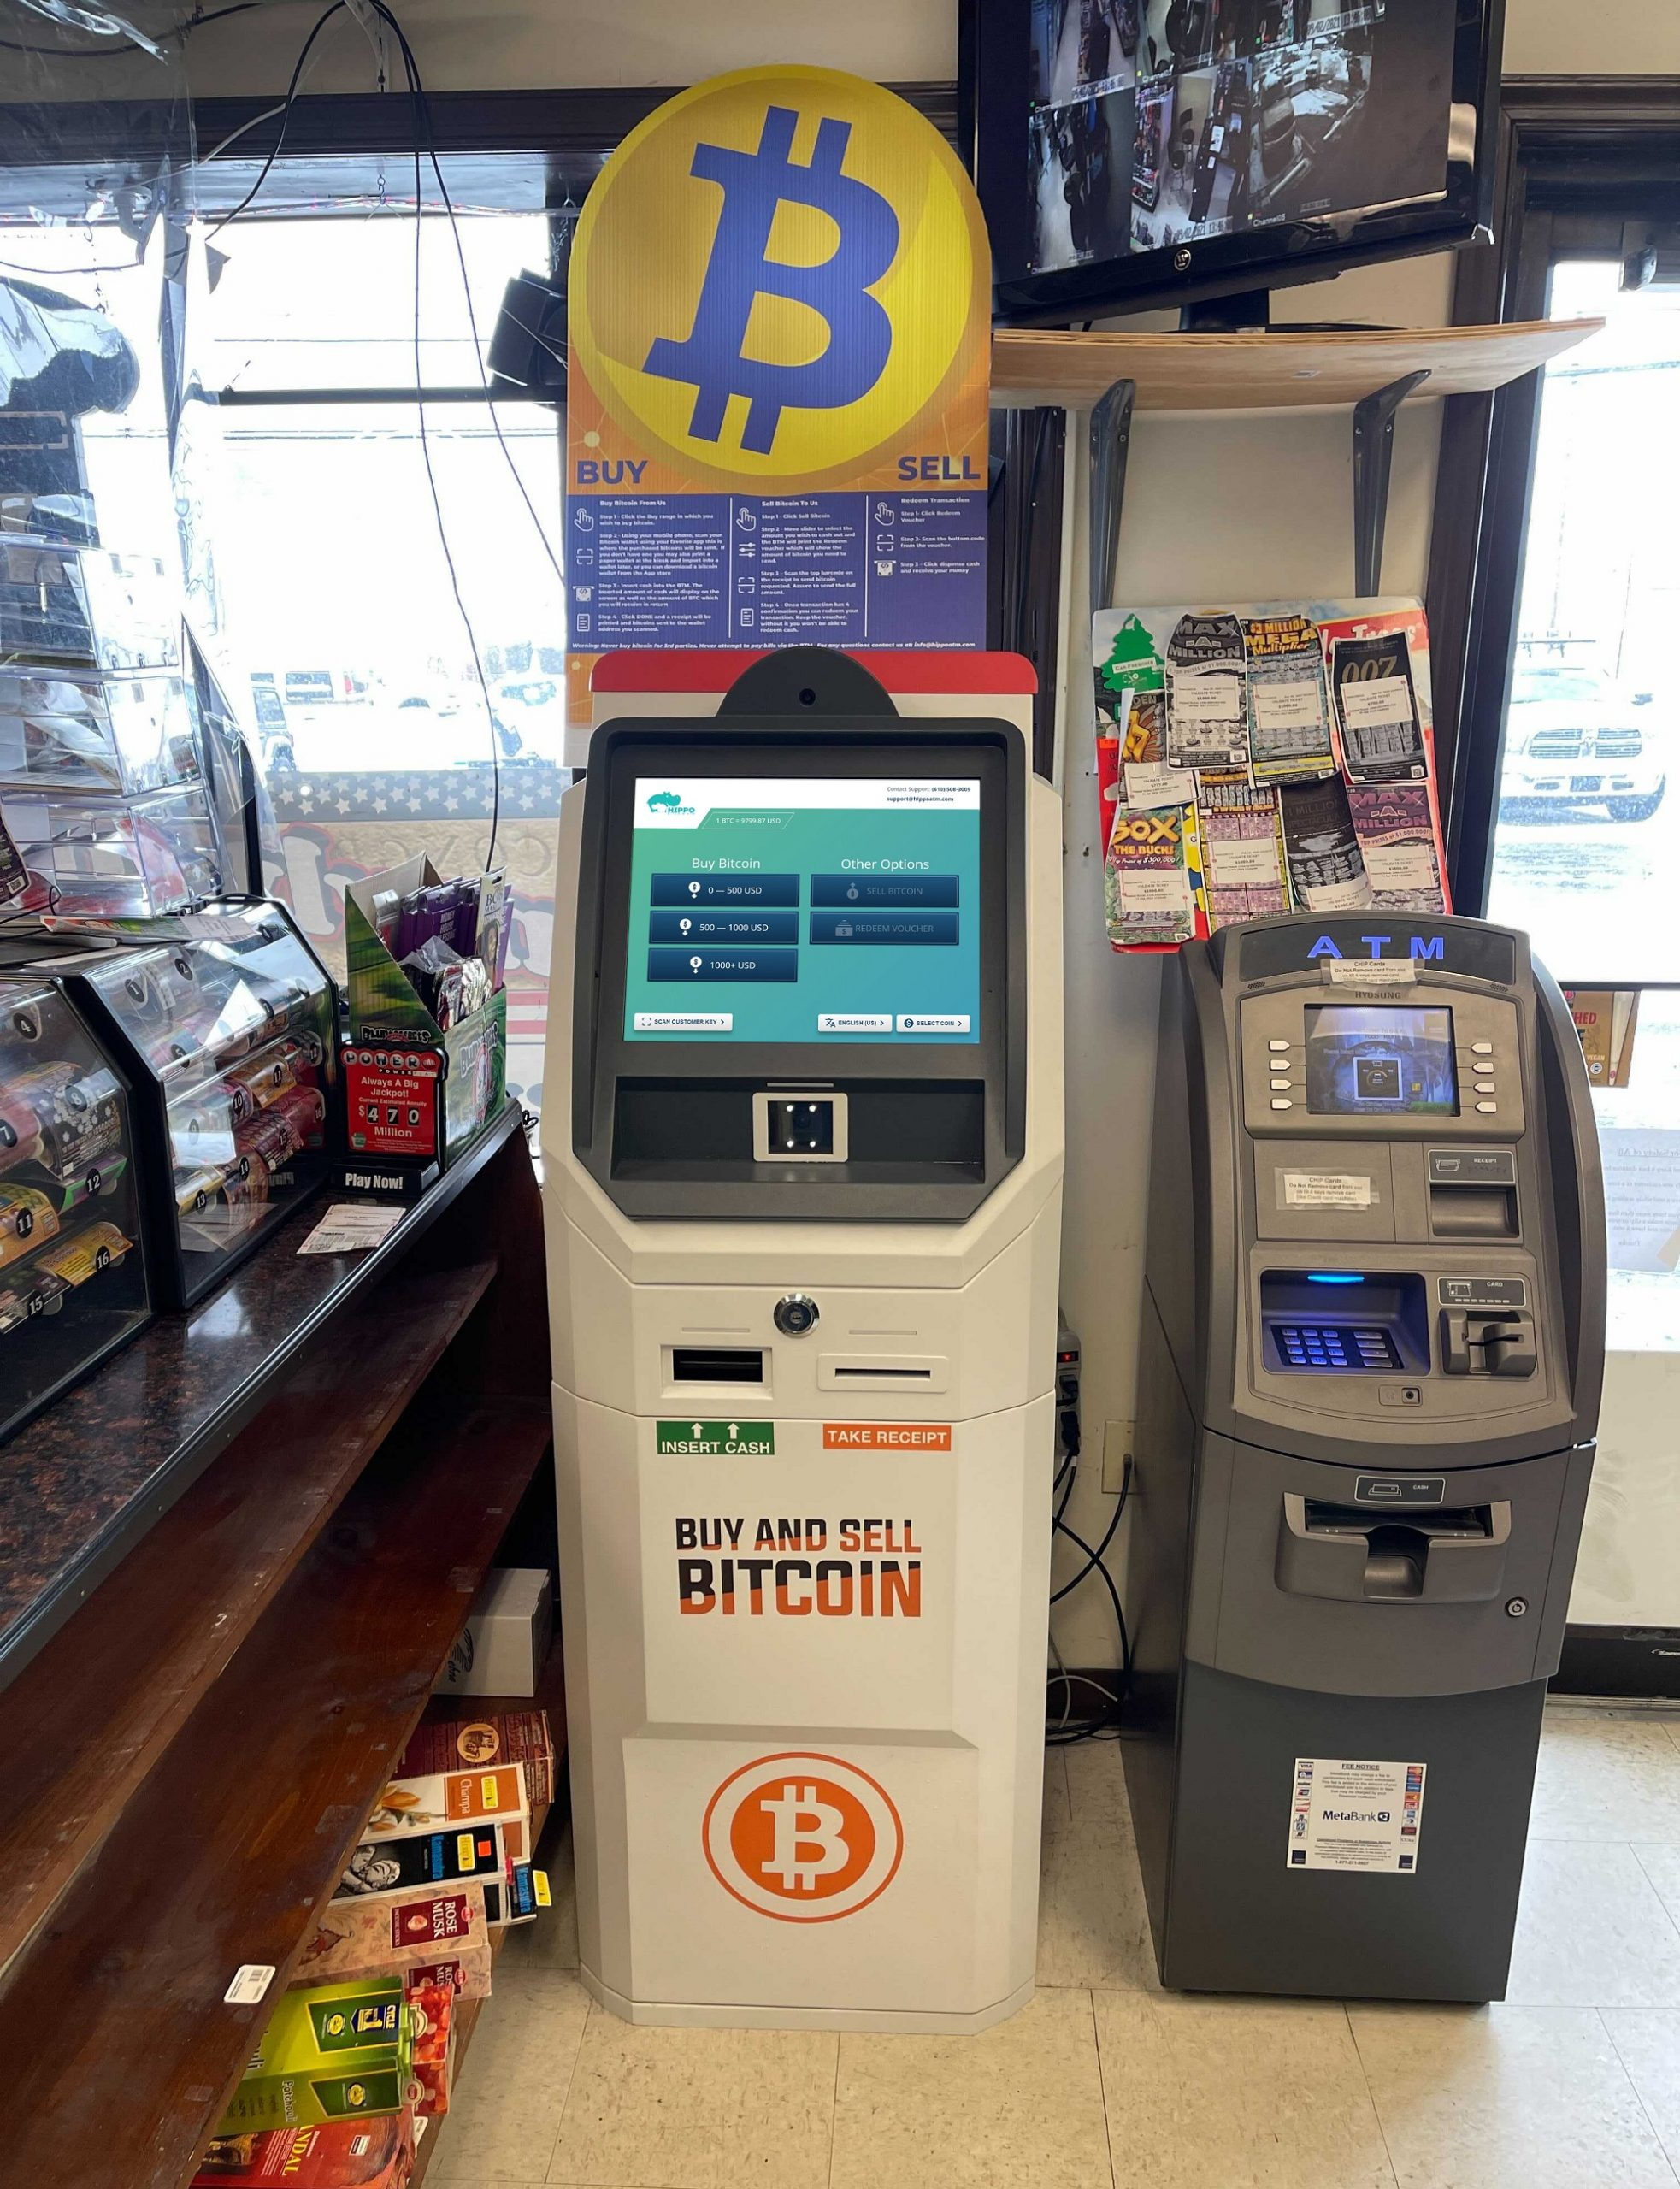 Bitcoin ATM Catasaqua for buying and selling bitcoin by hippo kiosks